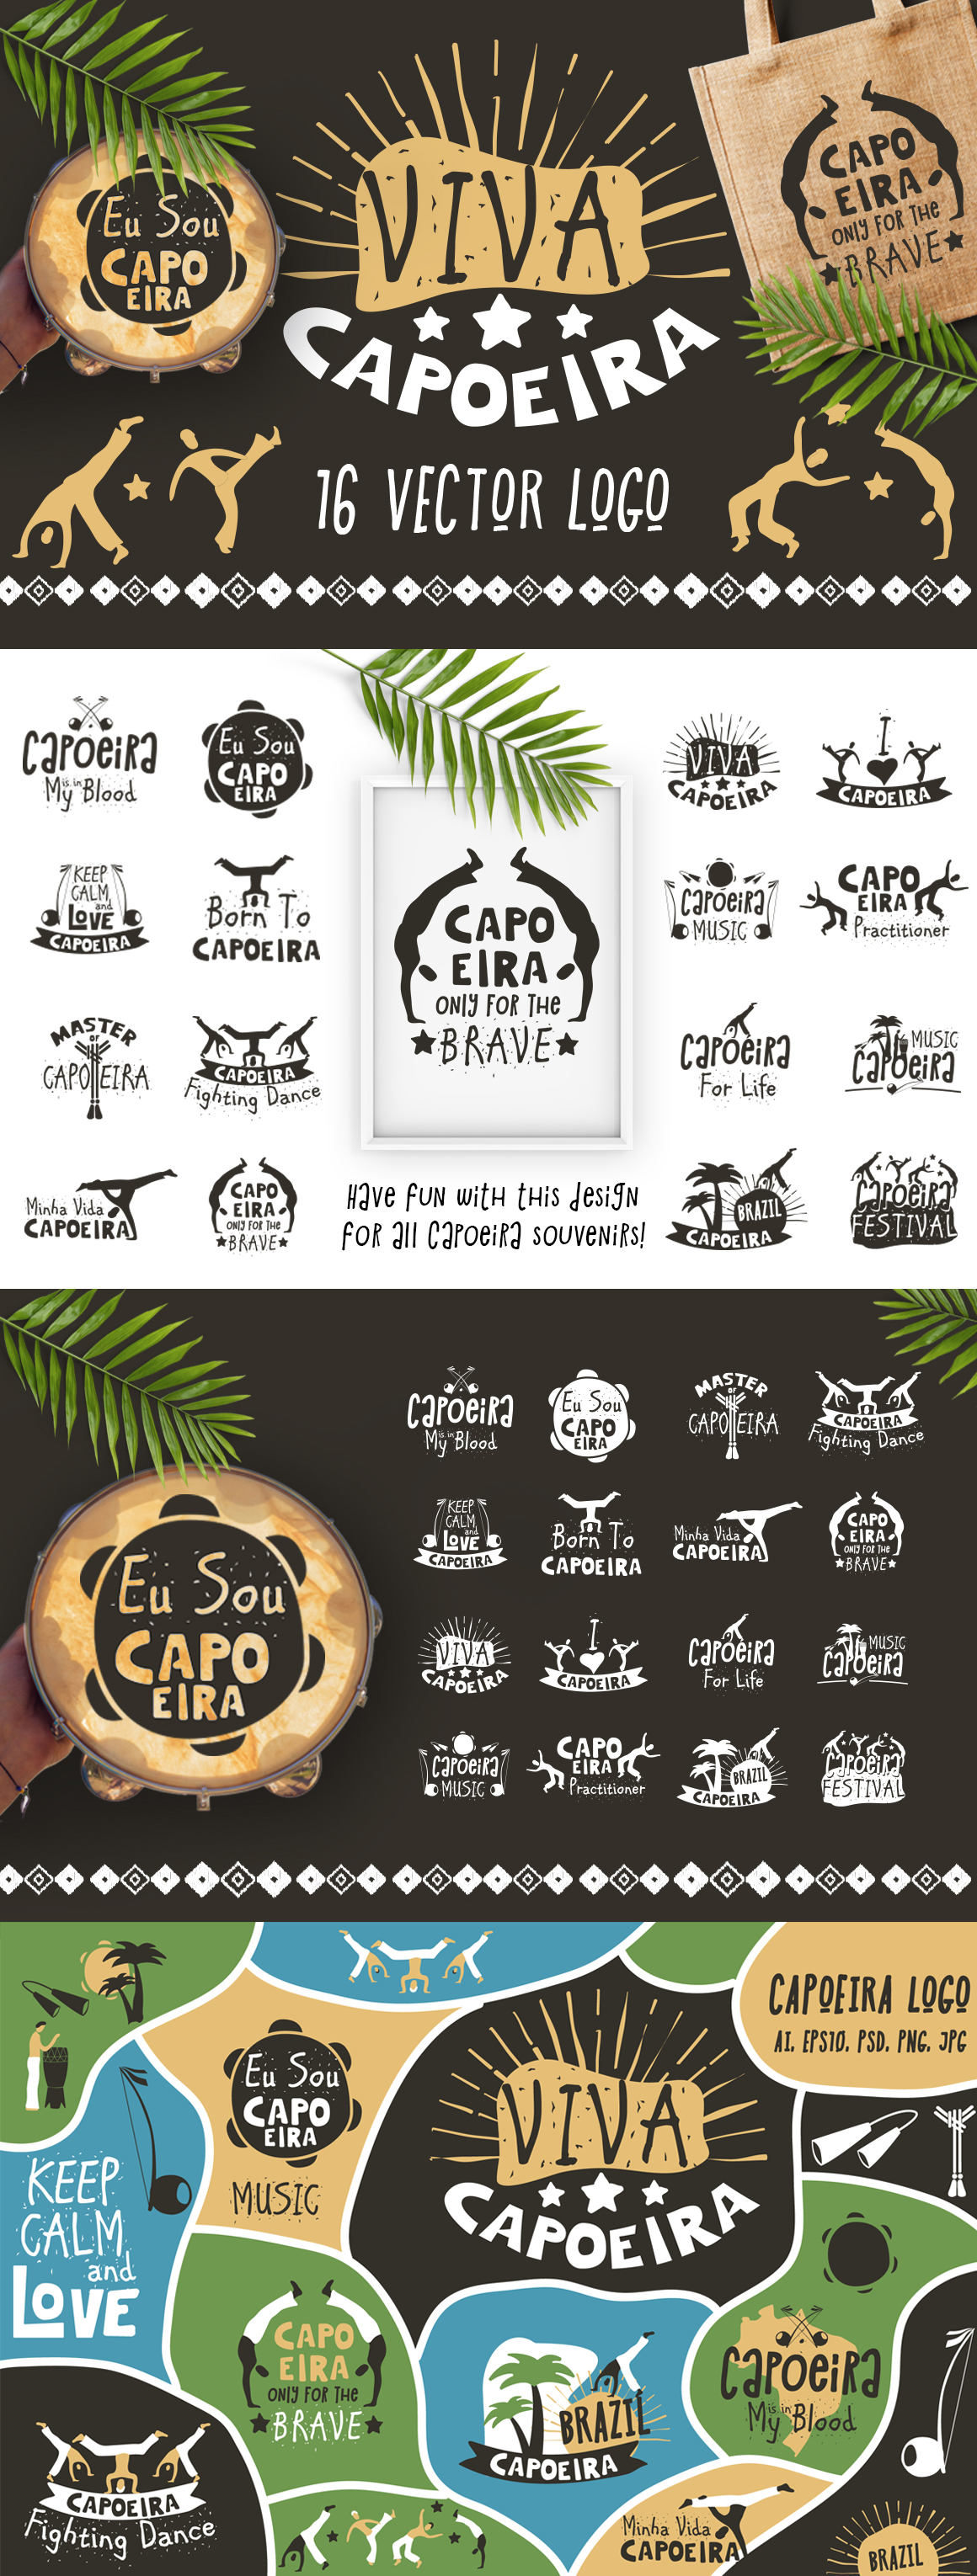 Vector logo for the capoeira souvenirs and gifts. You can use this logo for prints on t-shirts, apparel design and other. Also you will get Bonus - Capoeira ...